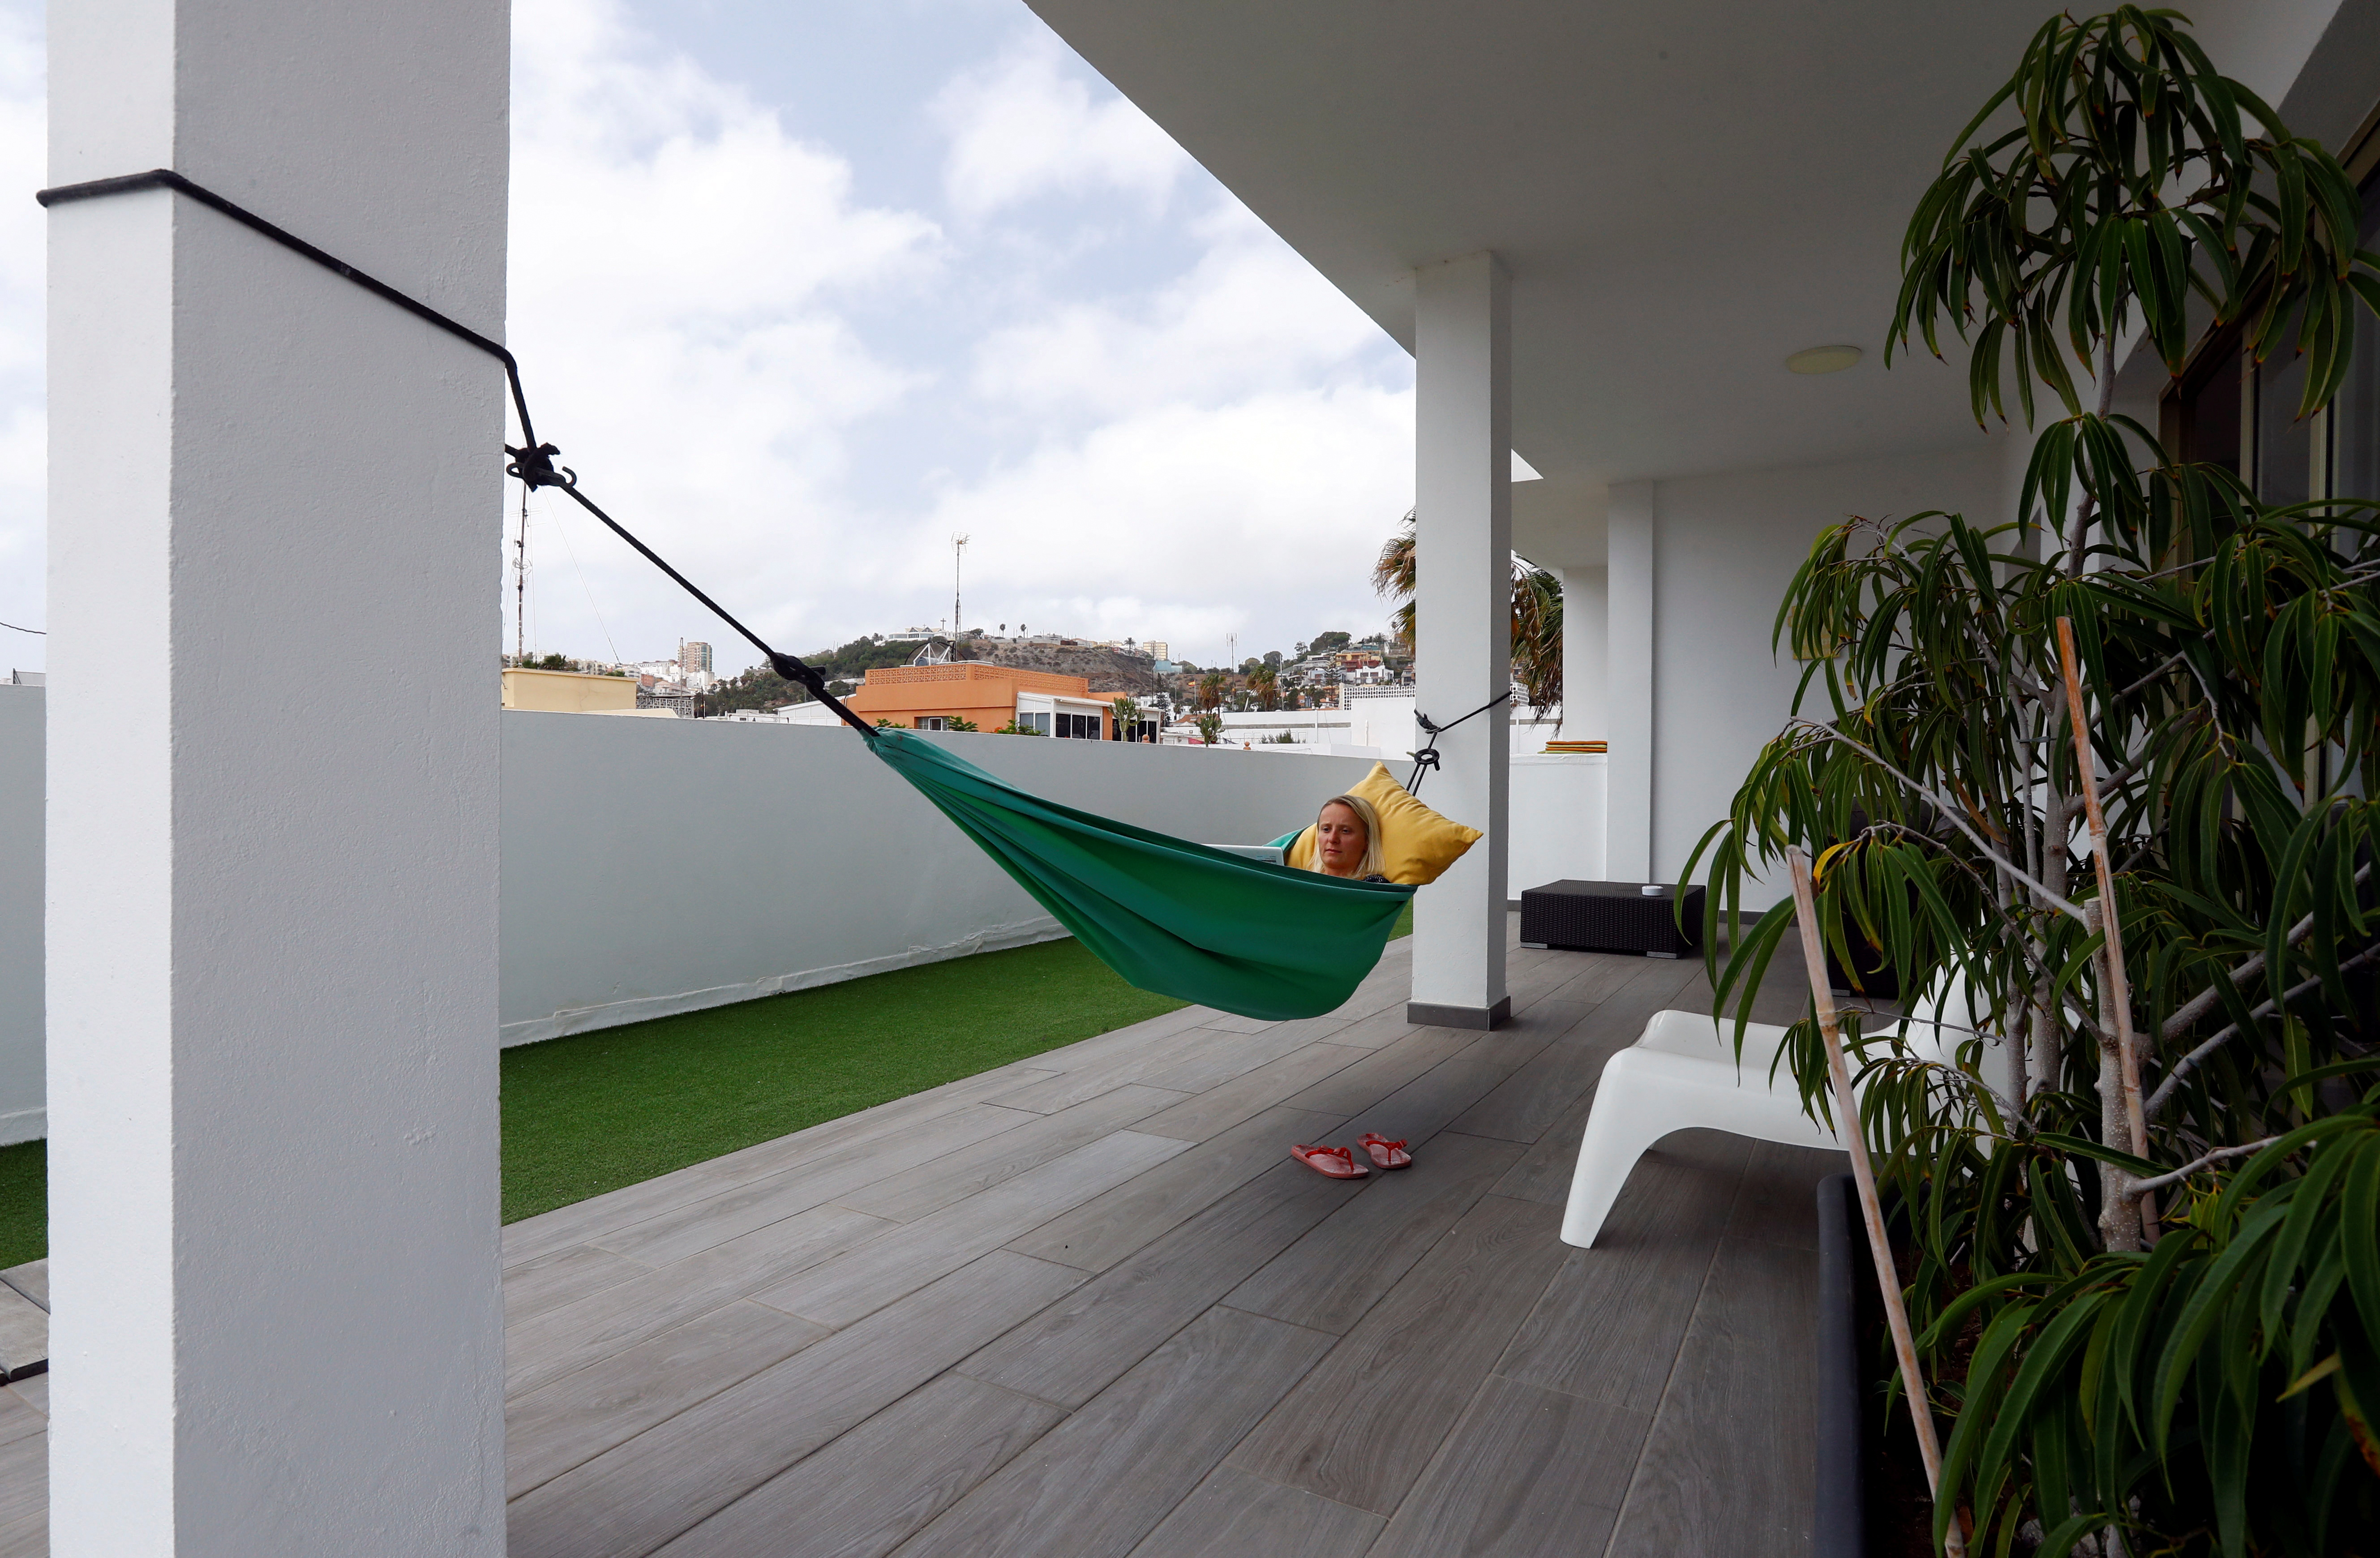 Olga Paul, a 34-year-old from Germany works remotely from Las Palmas De Gran Canaria, relaxes in hammock, amid the coronavirus disease (COVID-19) outbreak, in Gran Canaria, Spain July 23, 2021.  Picture taken July 23, 2021. REUTERS/Borja Suarez